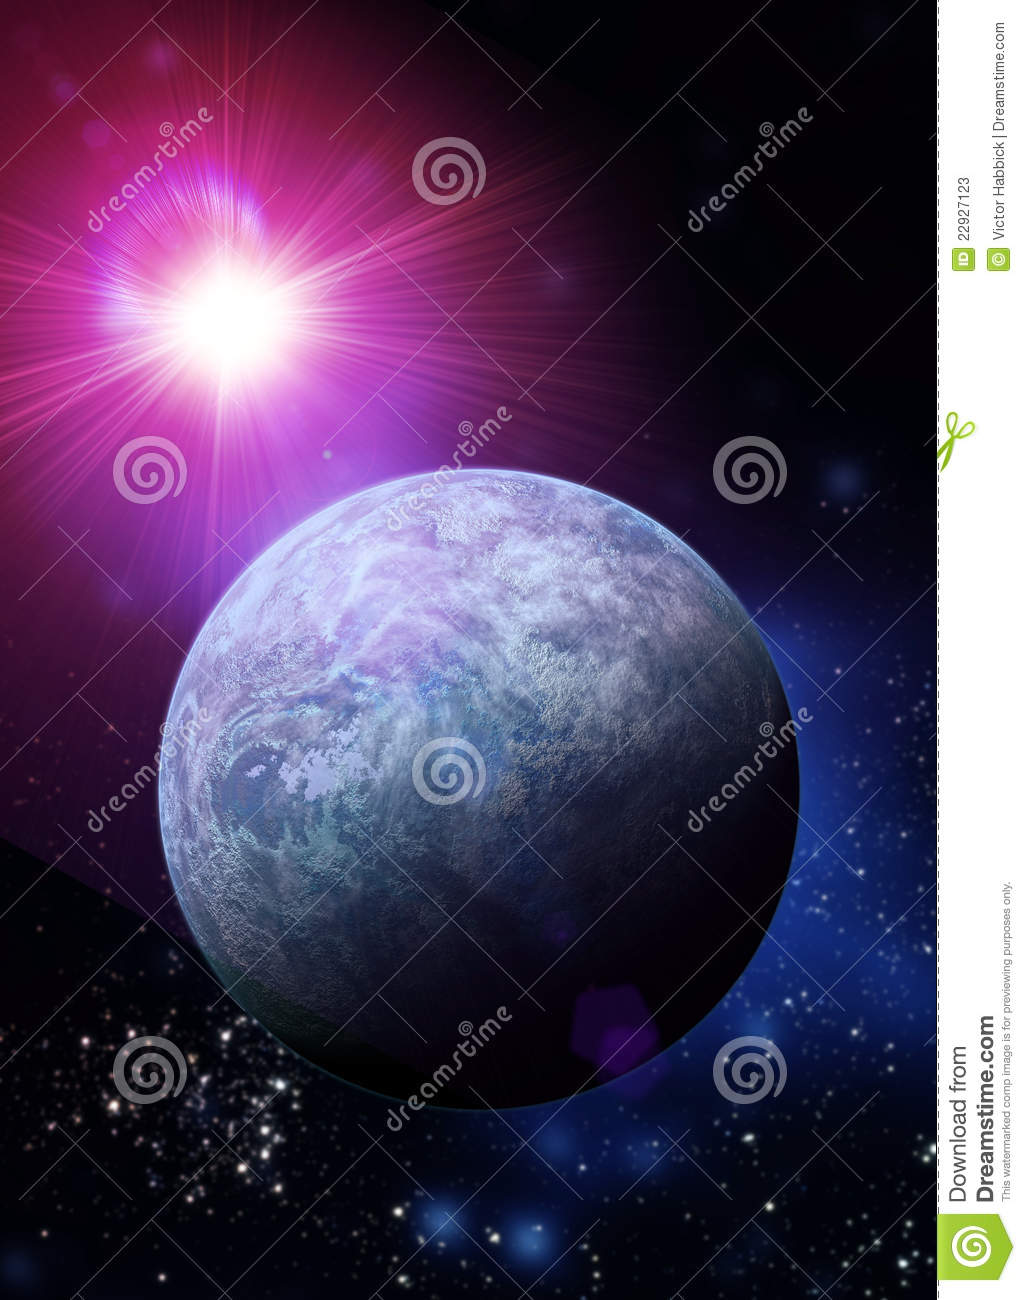 kepler planet distance from earth - photo #20